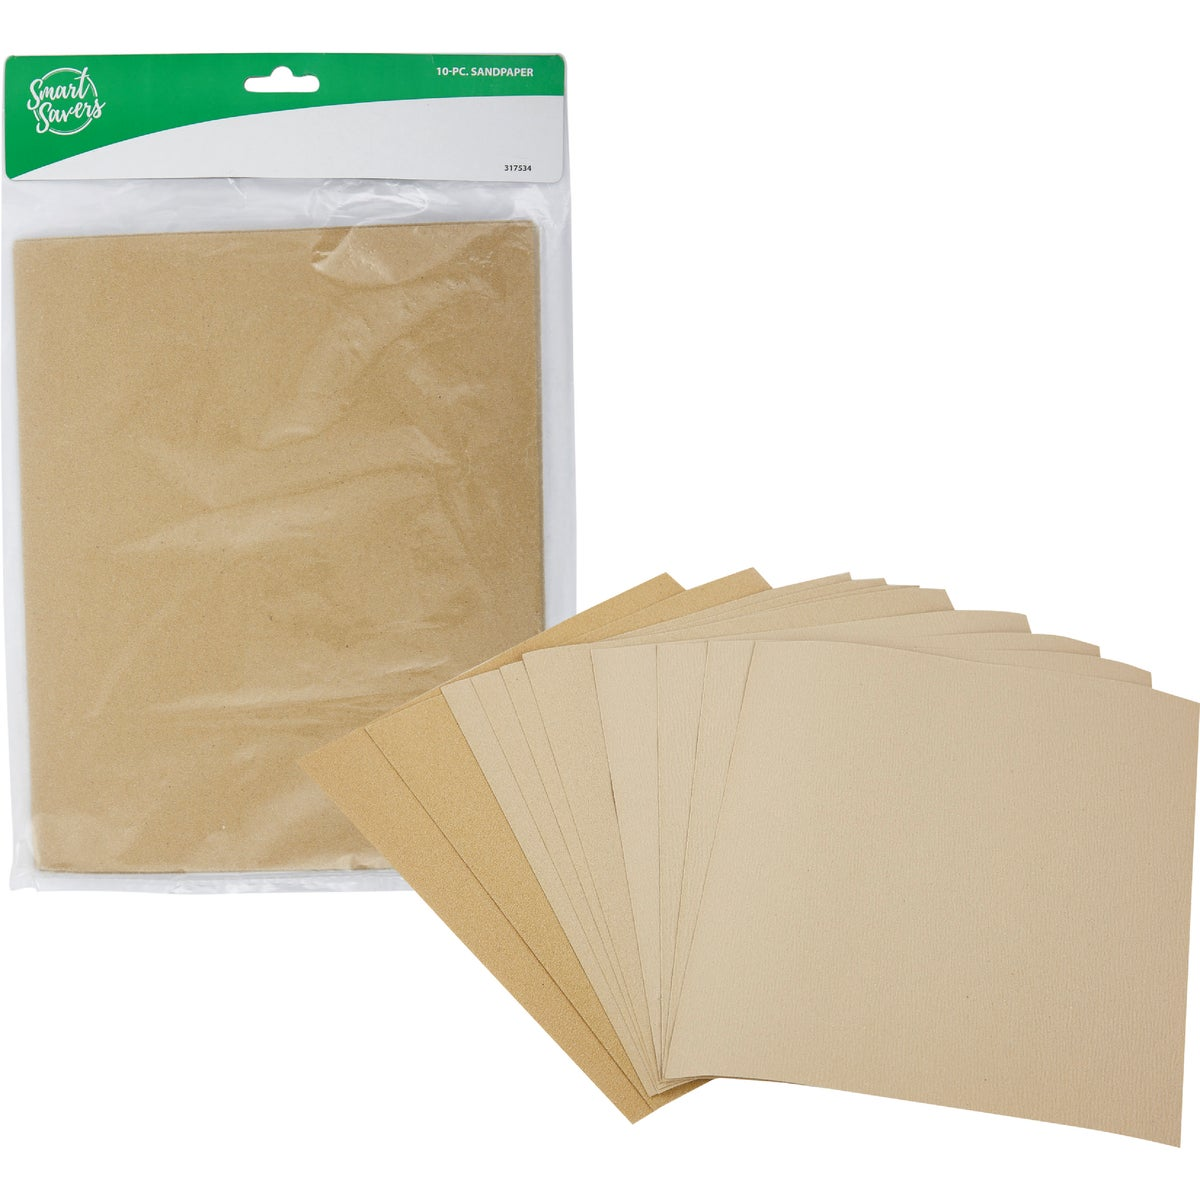 10PC SANDPAPER - CC101101 by Do it Best